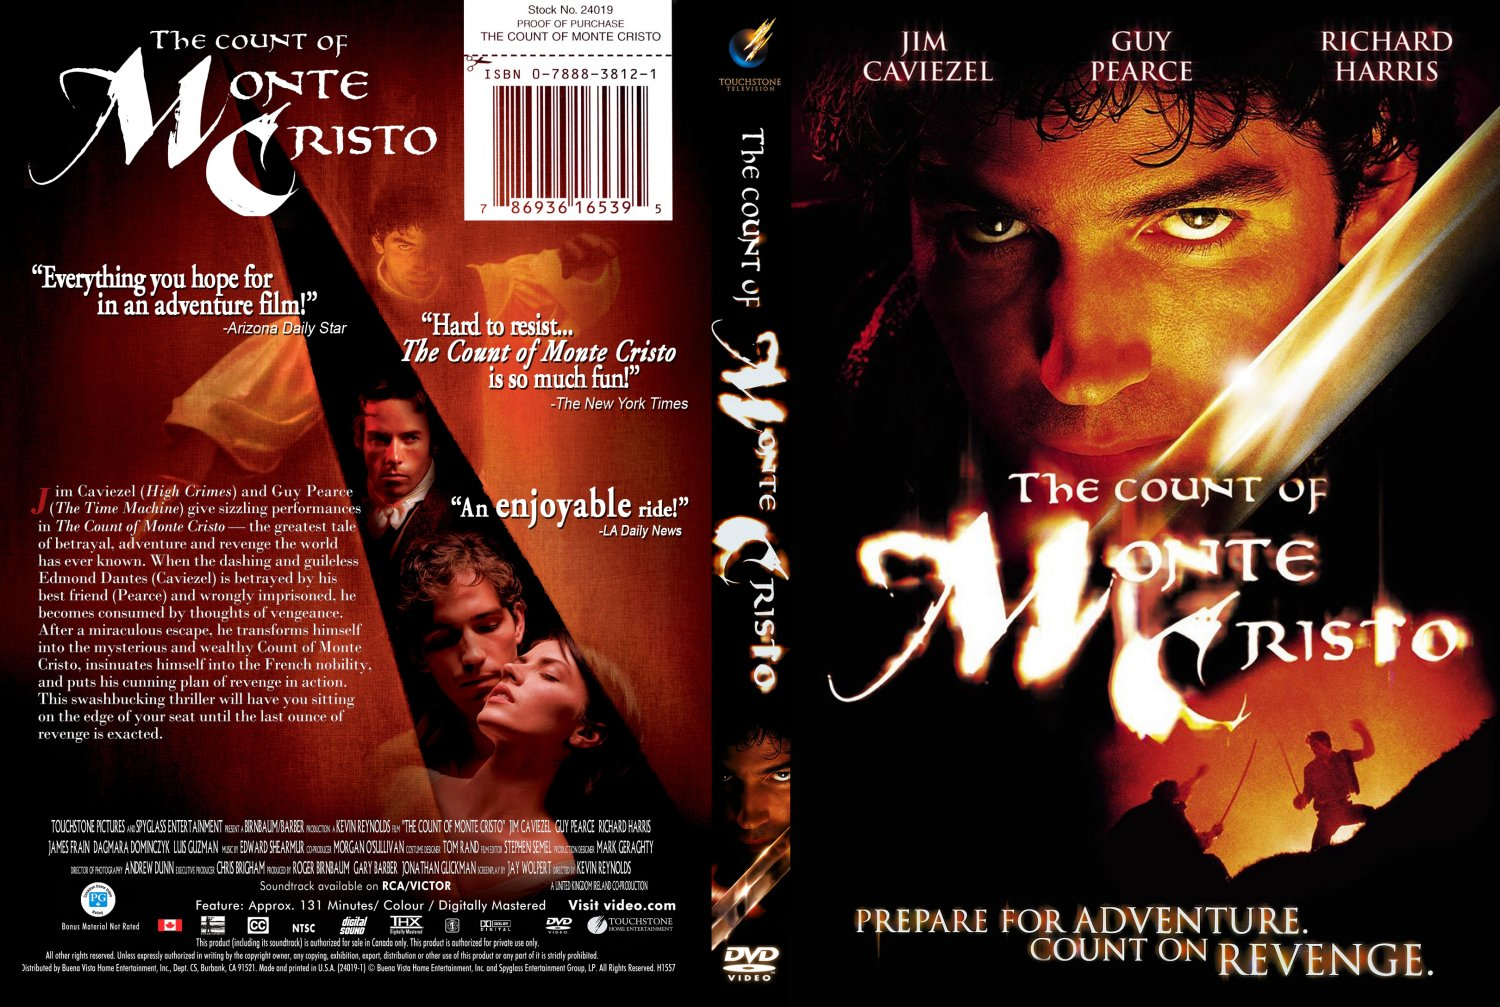 the count of monte cristo why When i think monte cristo the first thing that comes to mind is the yummy ham and cheese sandwich the second thing is the movie, the count of monte cristo, a film i own on dvd and rarely watch.